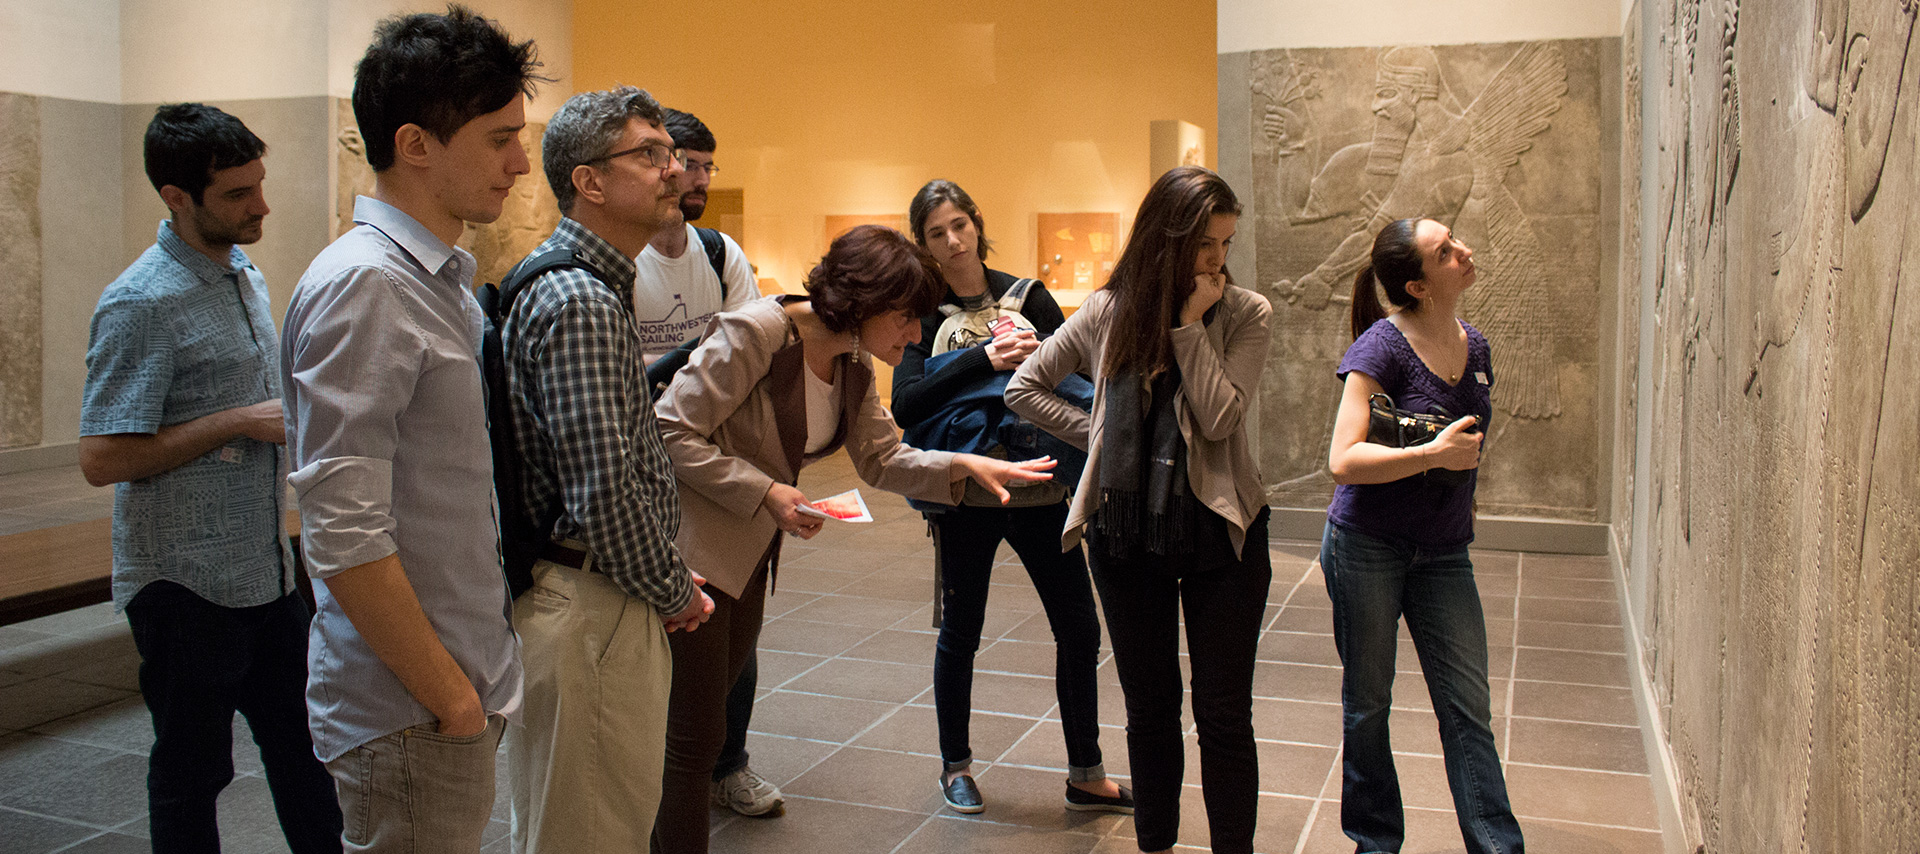 Professor Luciani with students at the MET